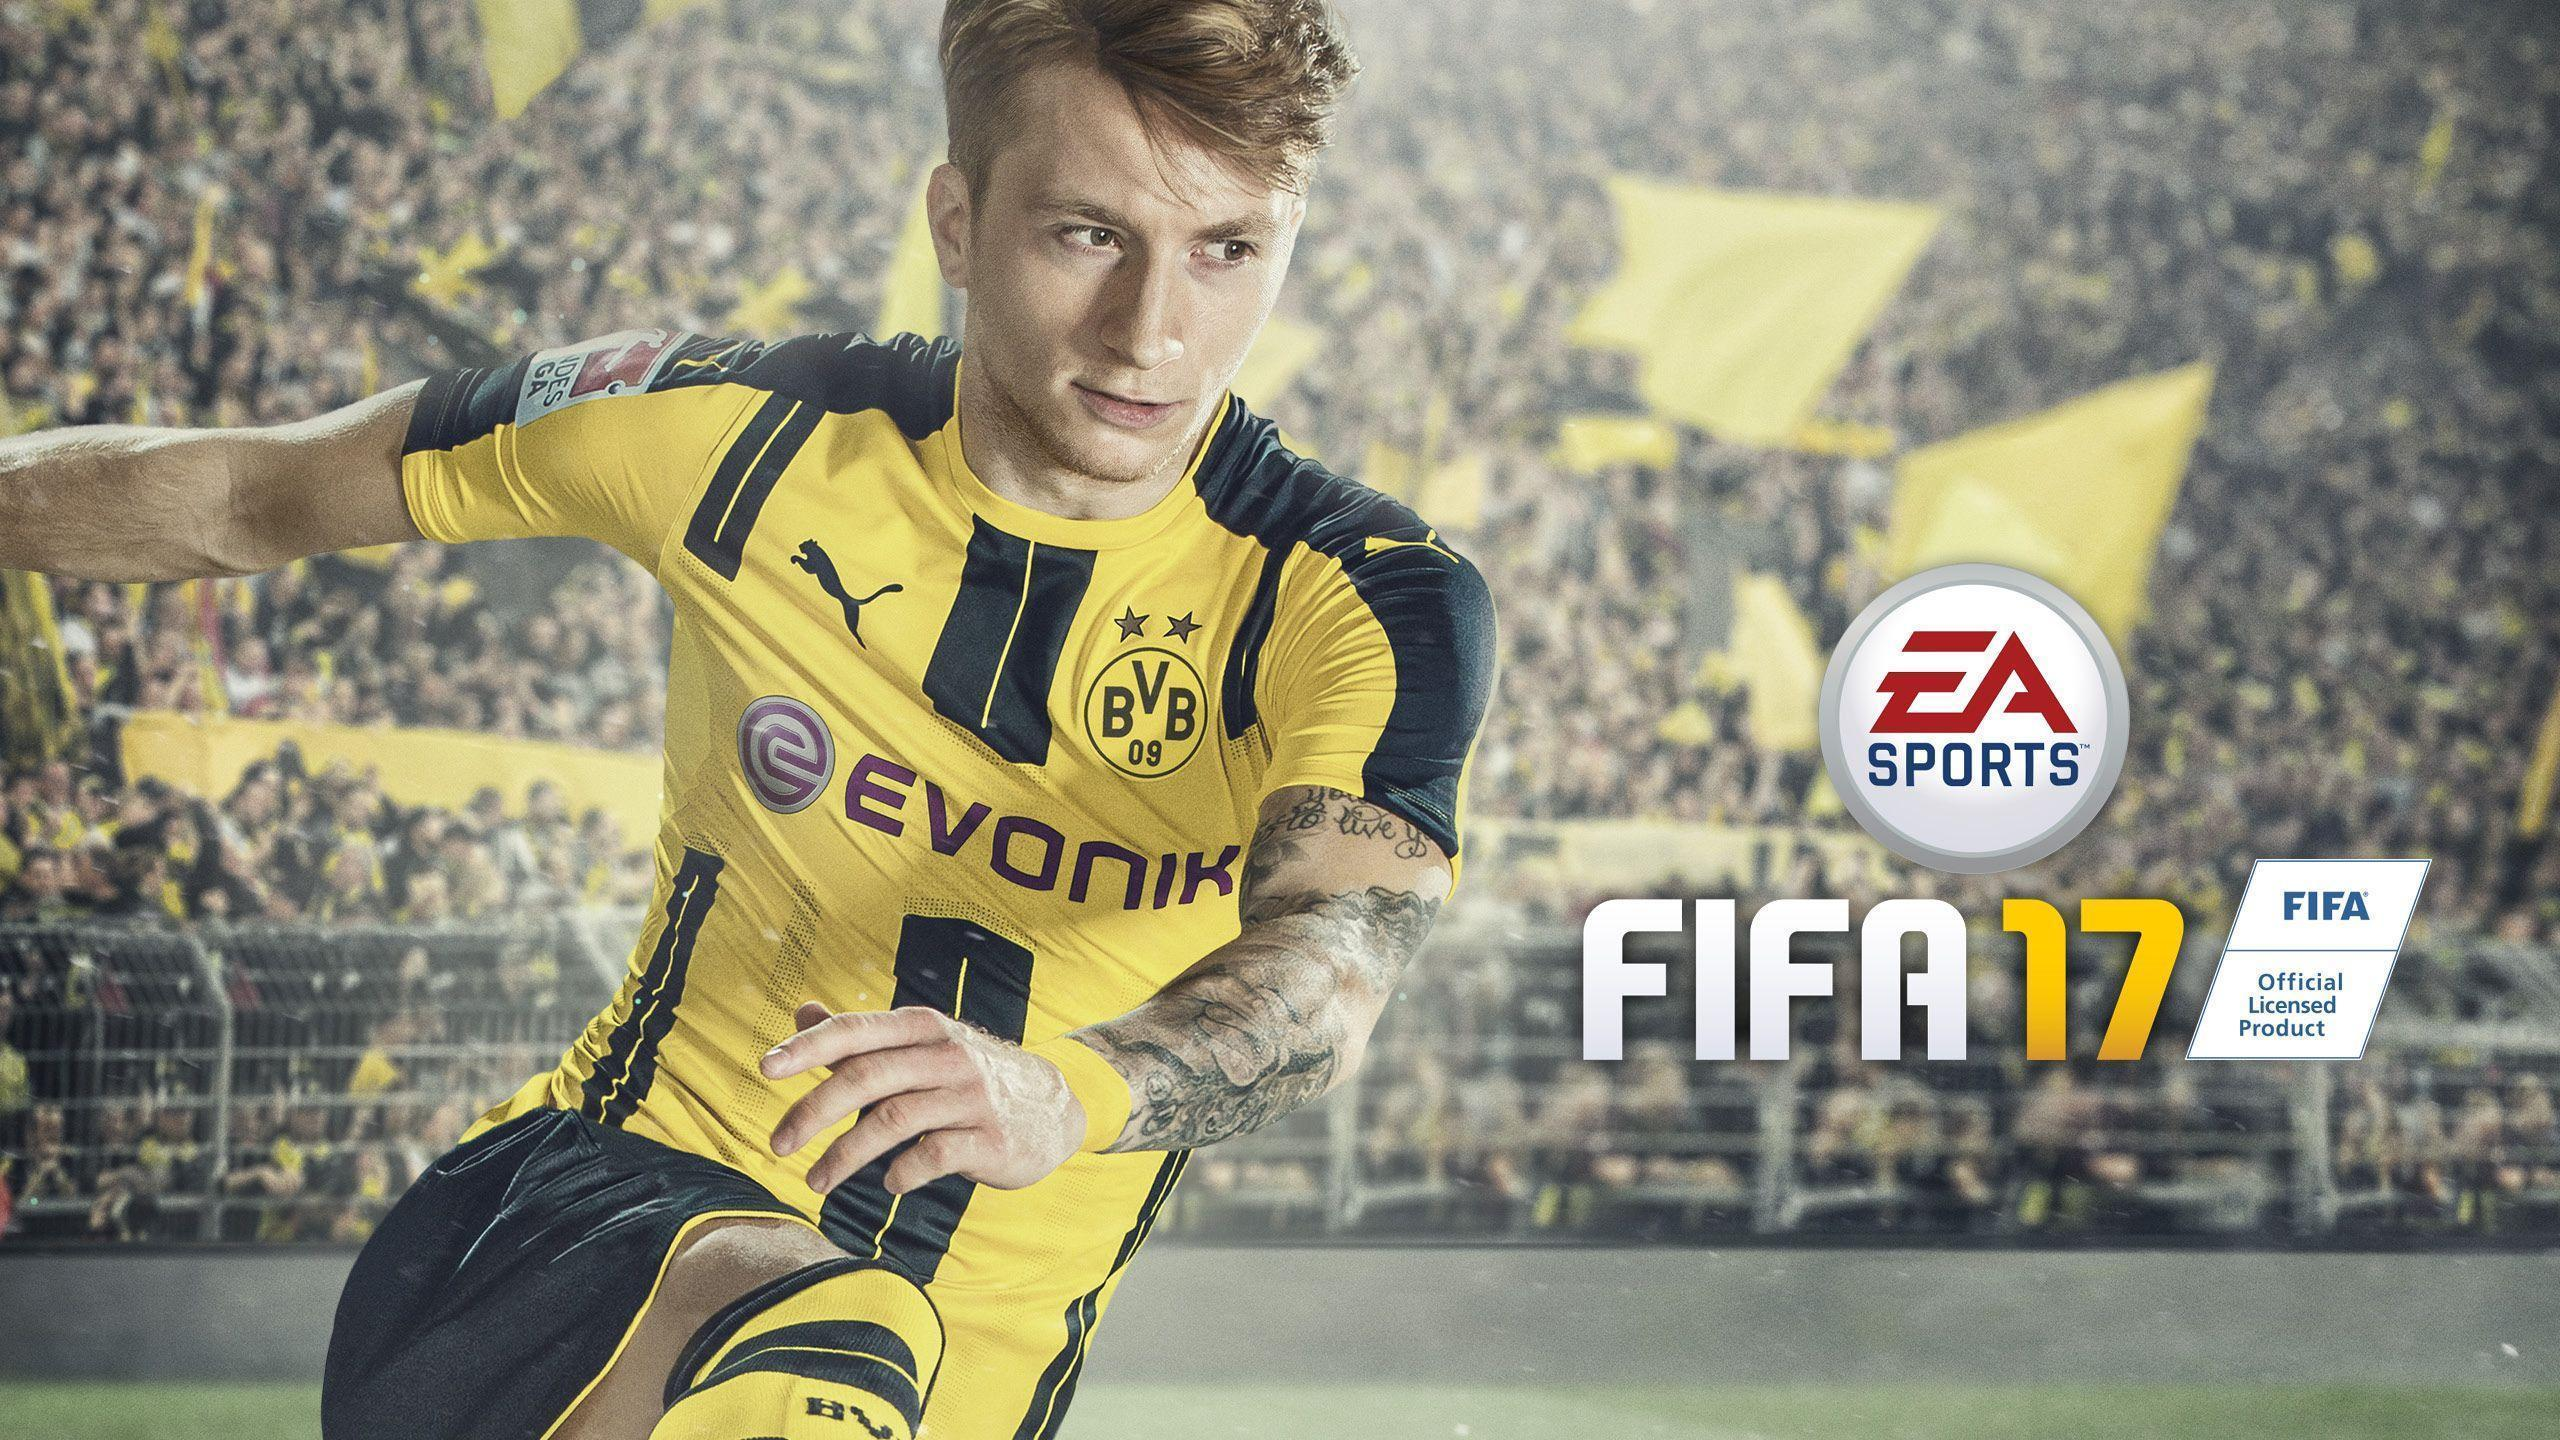 Wallpaper Marco Reus FIFA 17 EA Sports Football Game HD Games